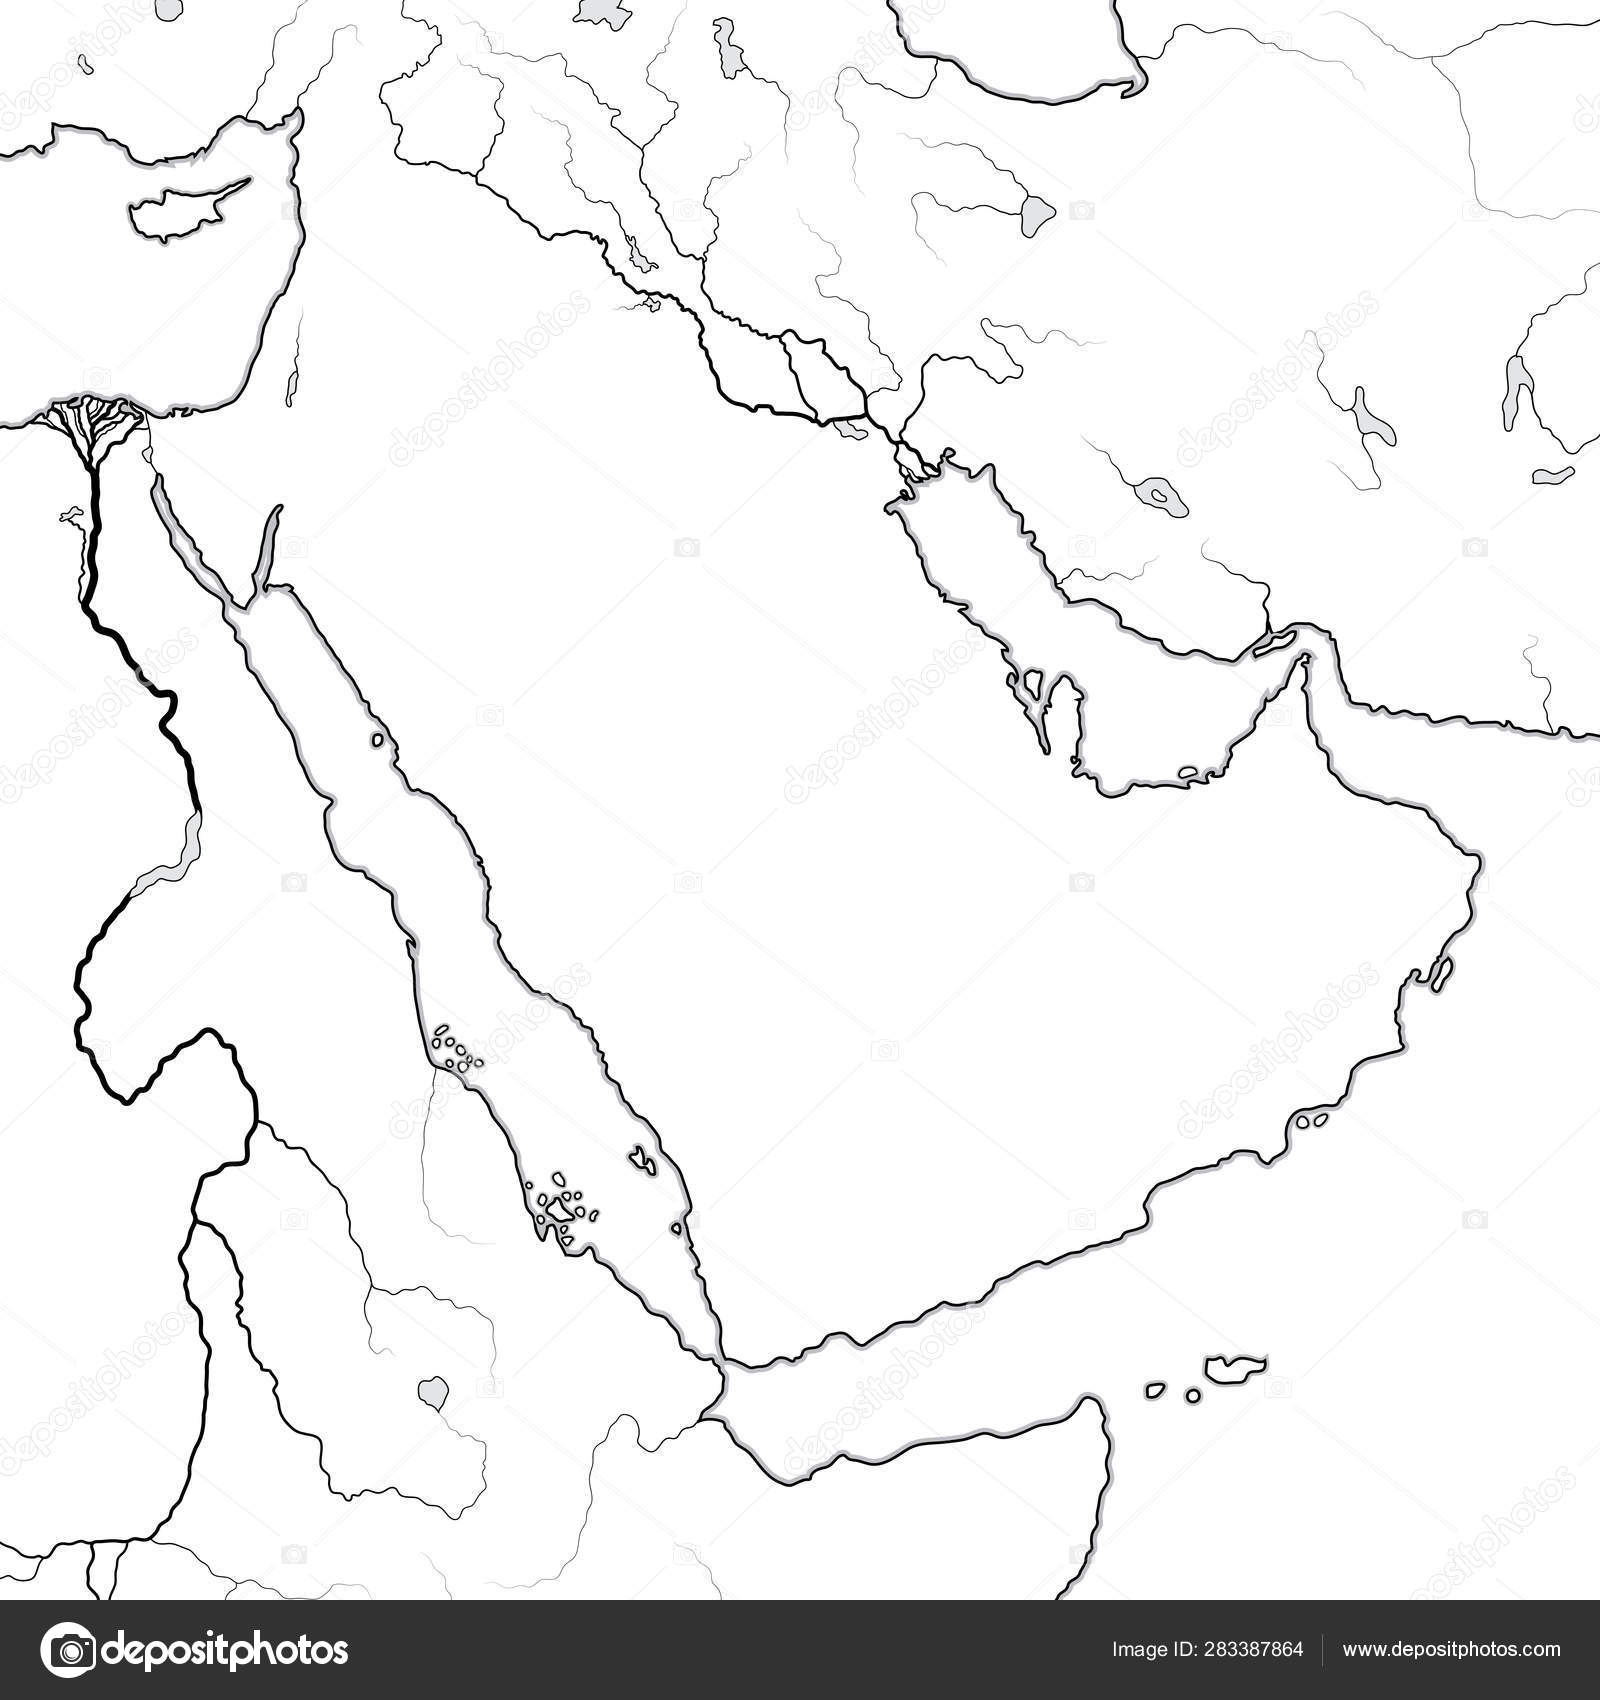 World Map of ARABIAN PENINSULA: The Middle East, Arab World ...